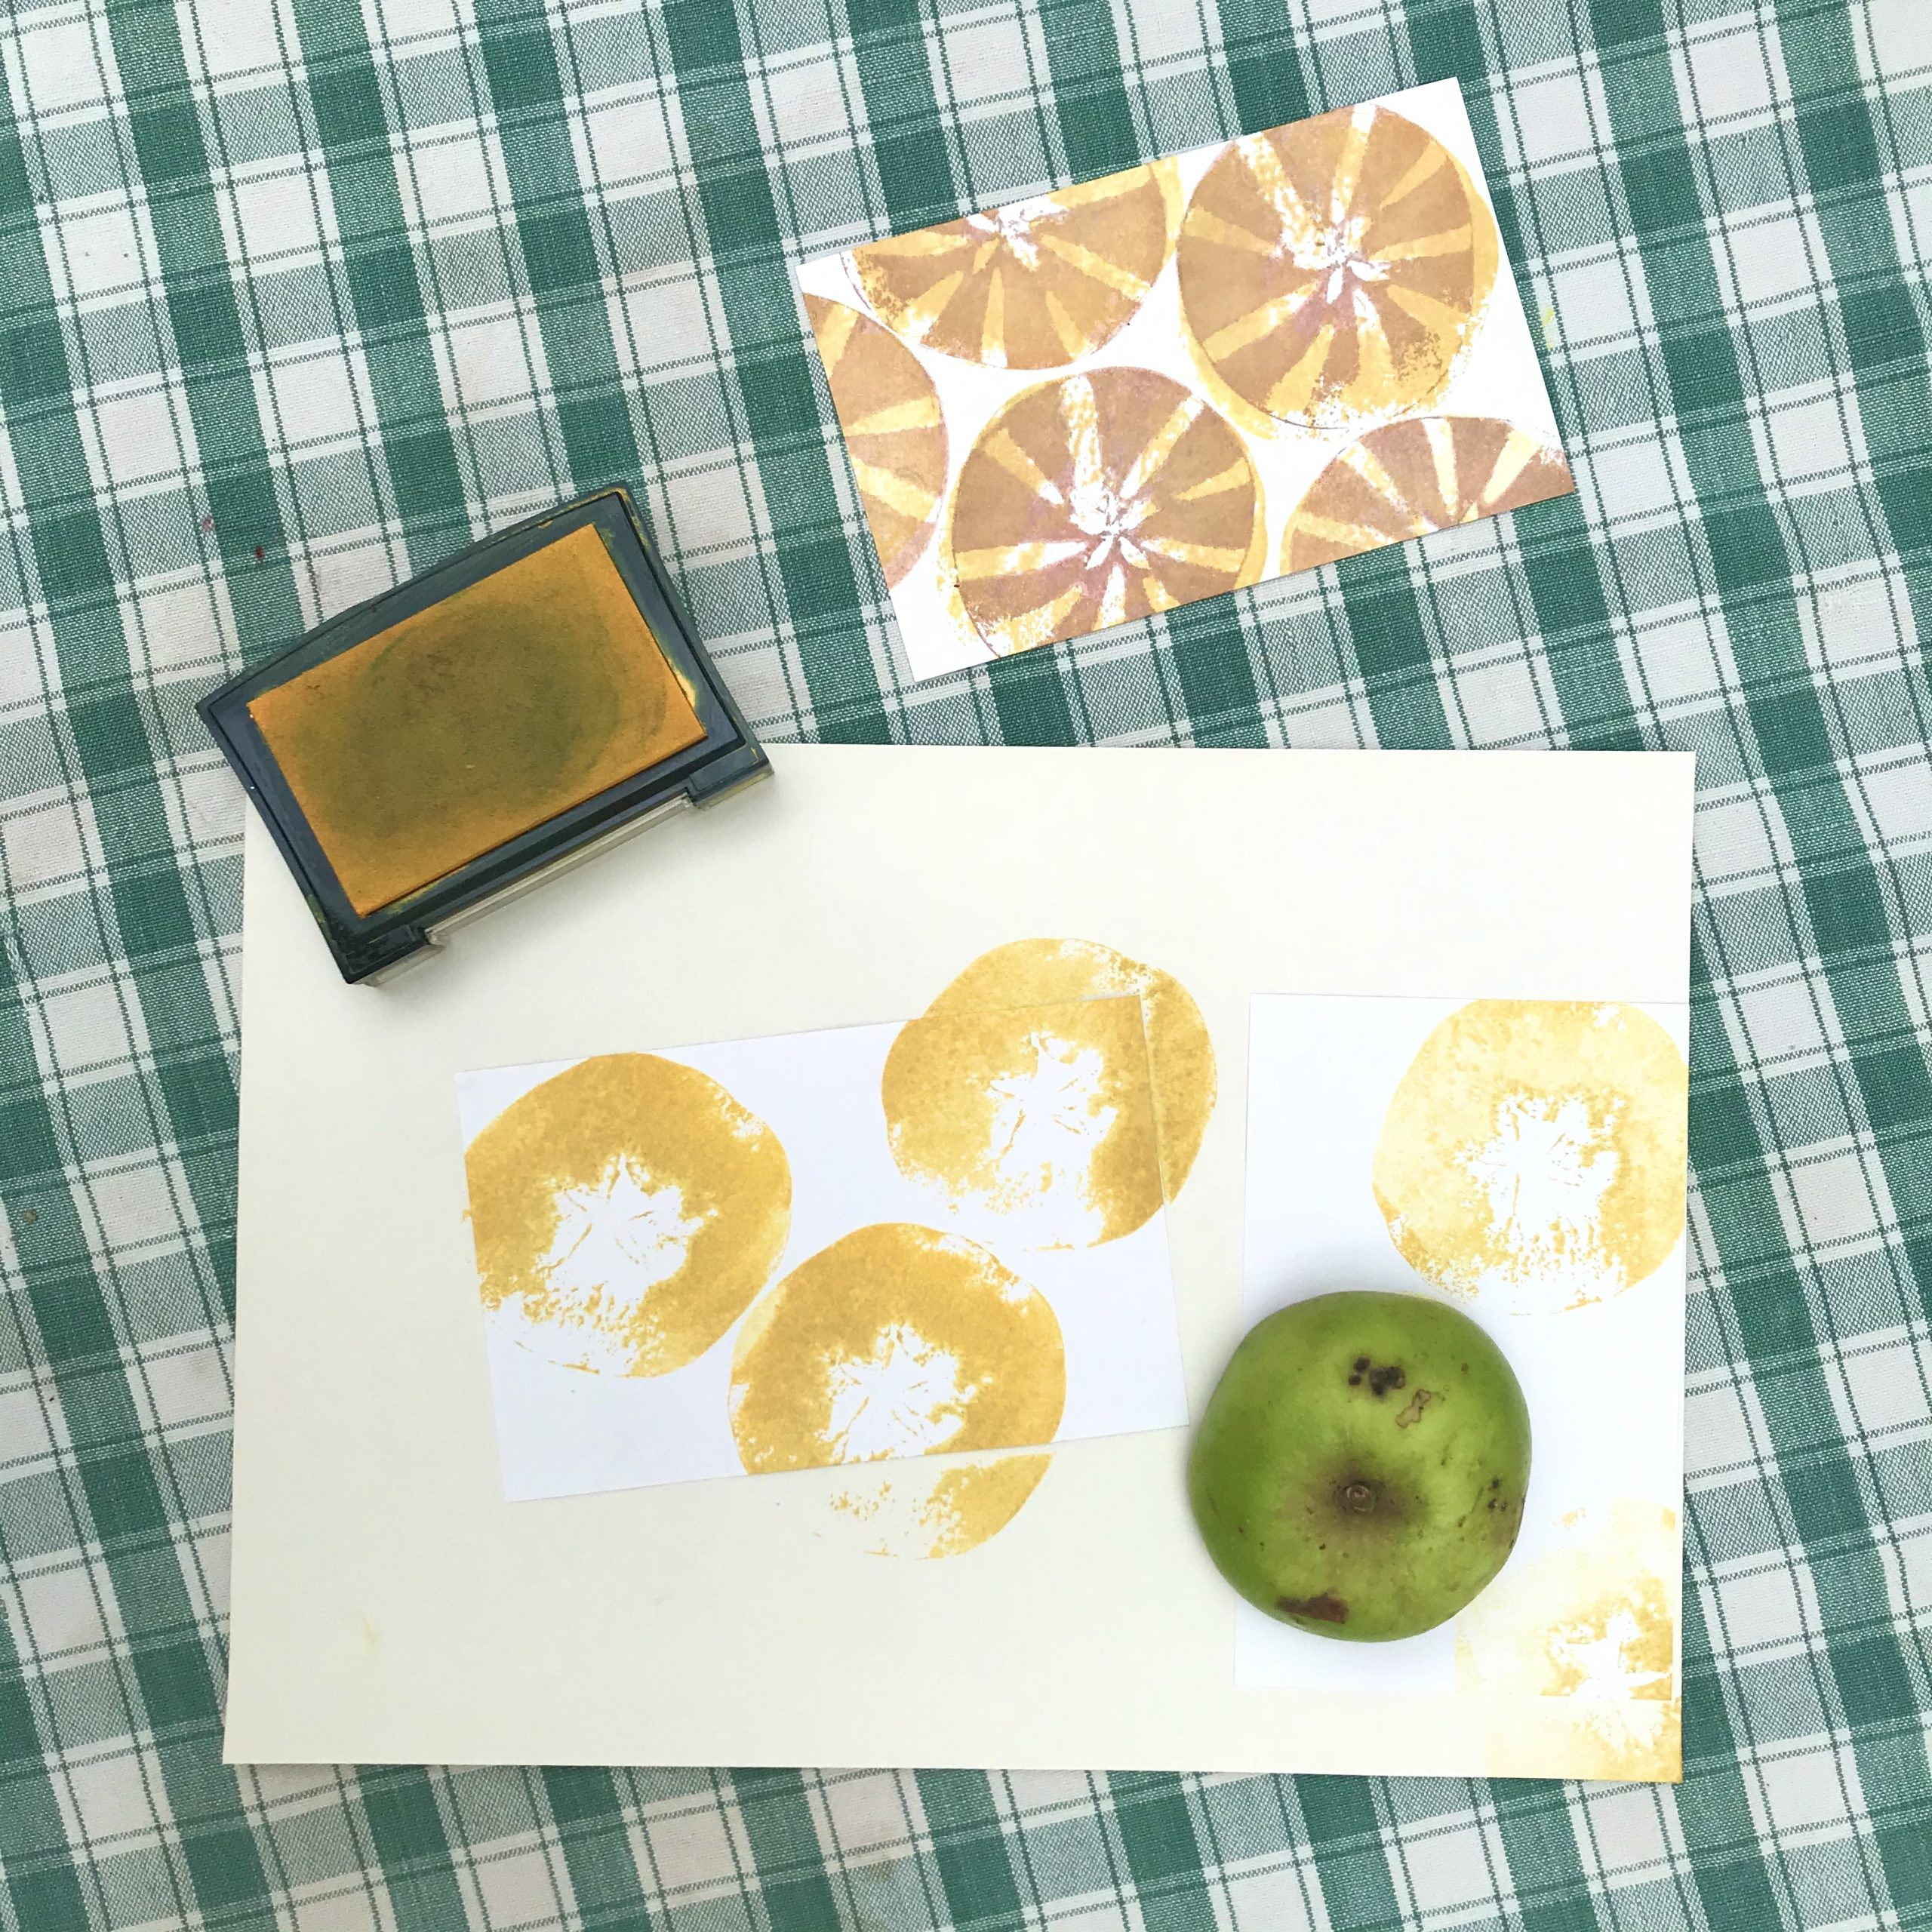 Using half an apple to print a simple shape onto the paper in yellow ink